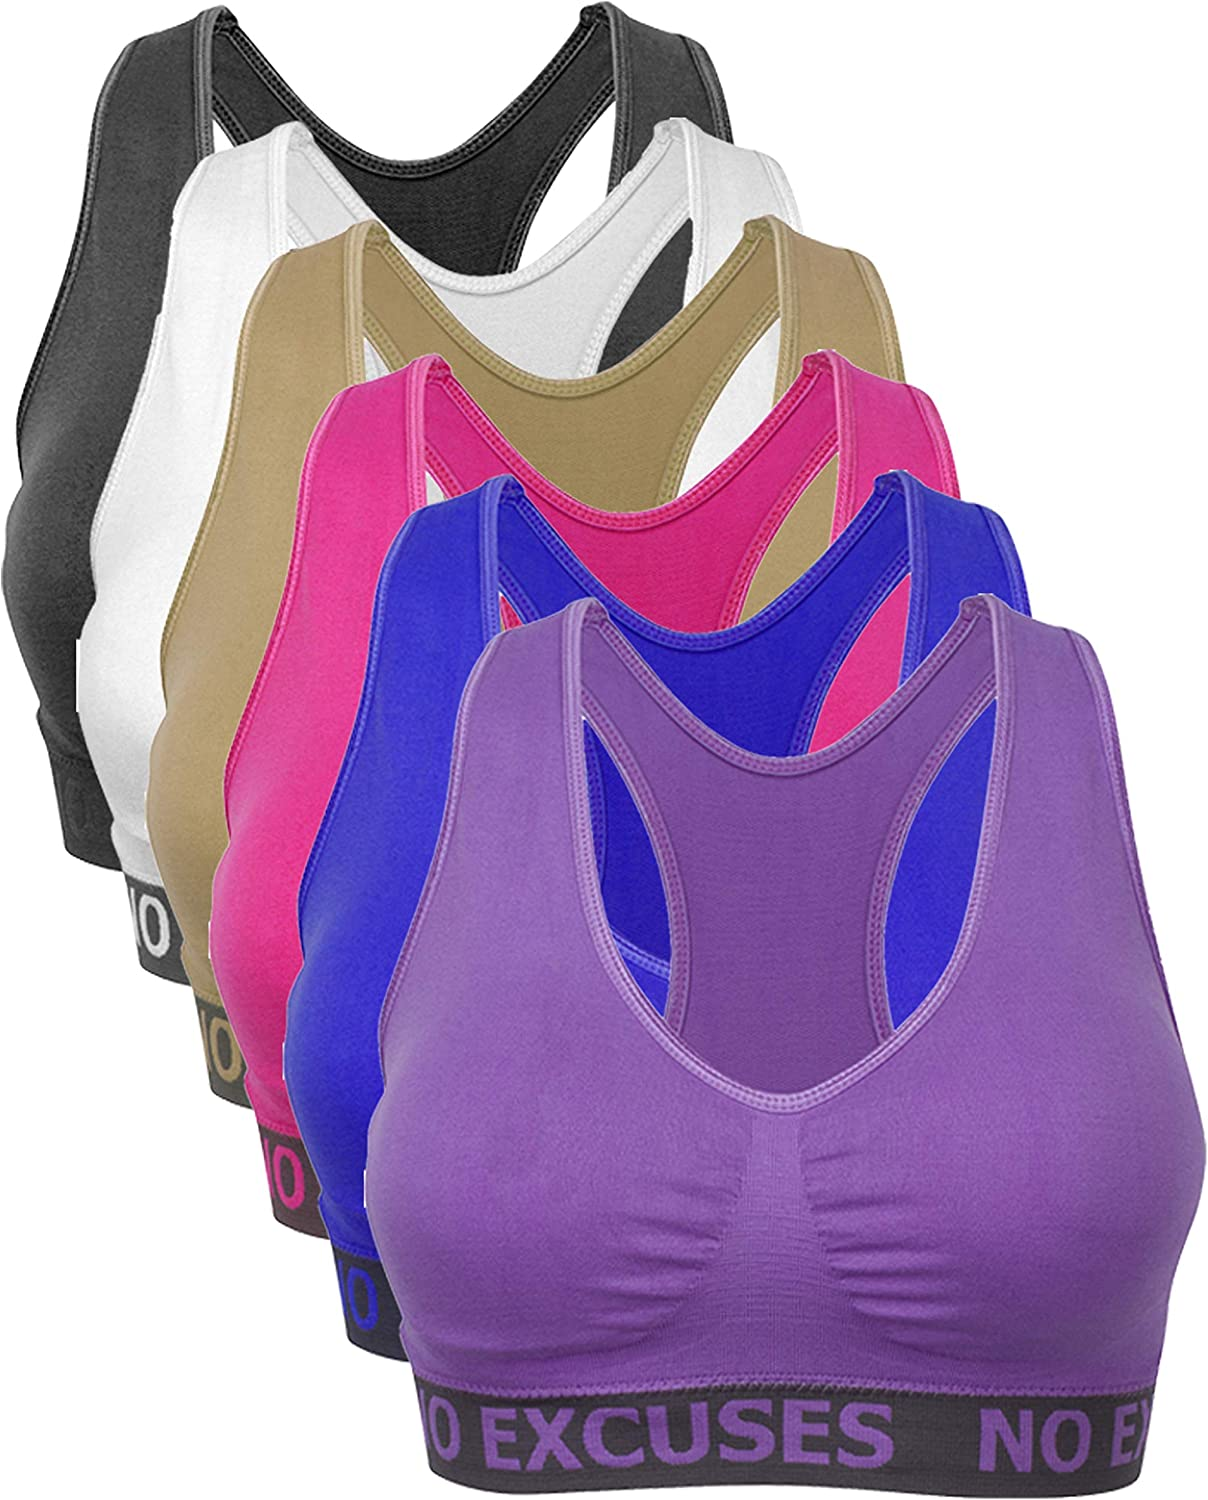 Barbra's Regular & Plus Size Wirefree Racerback Bras with Removable Pads